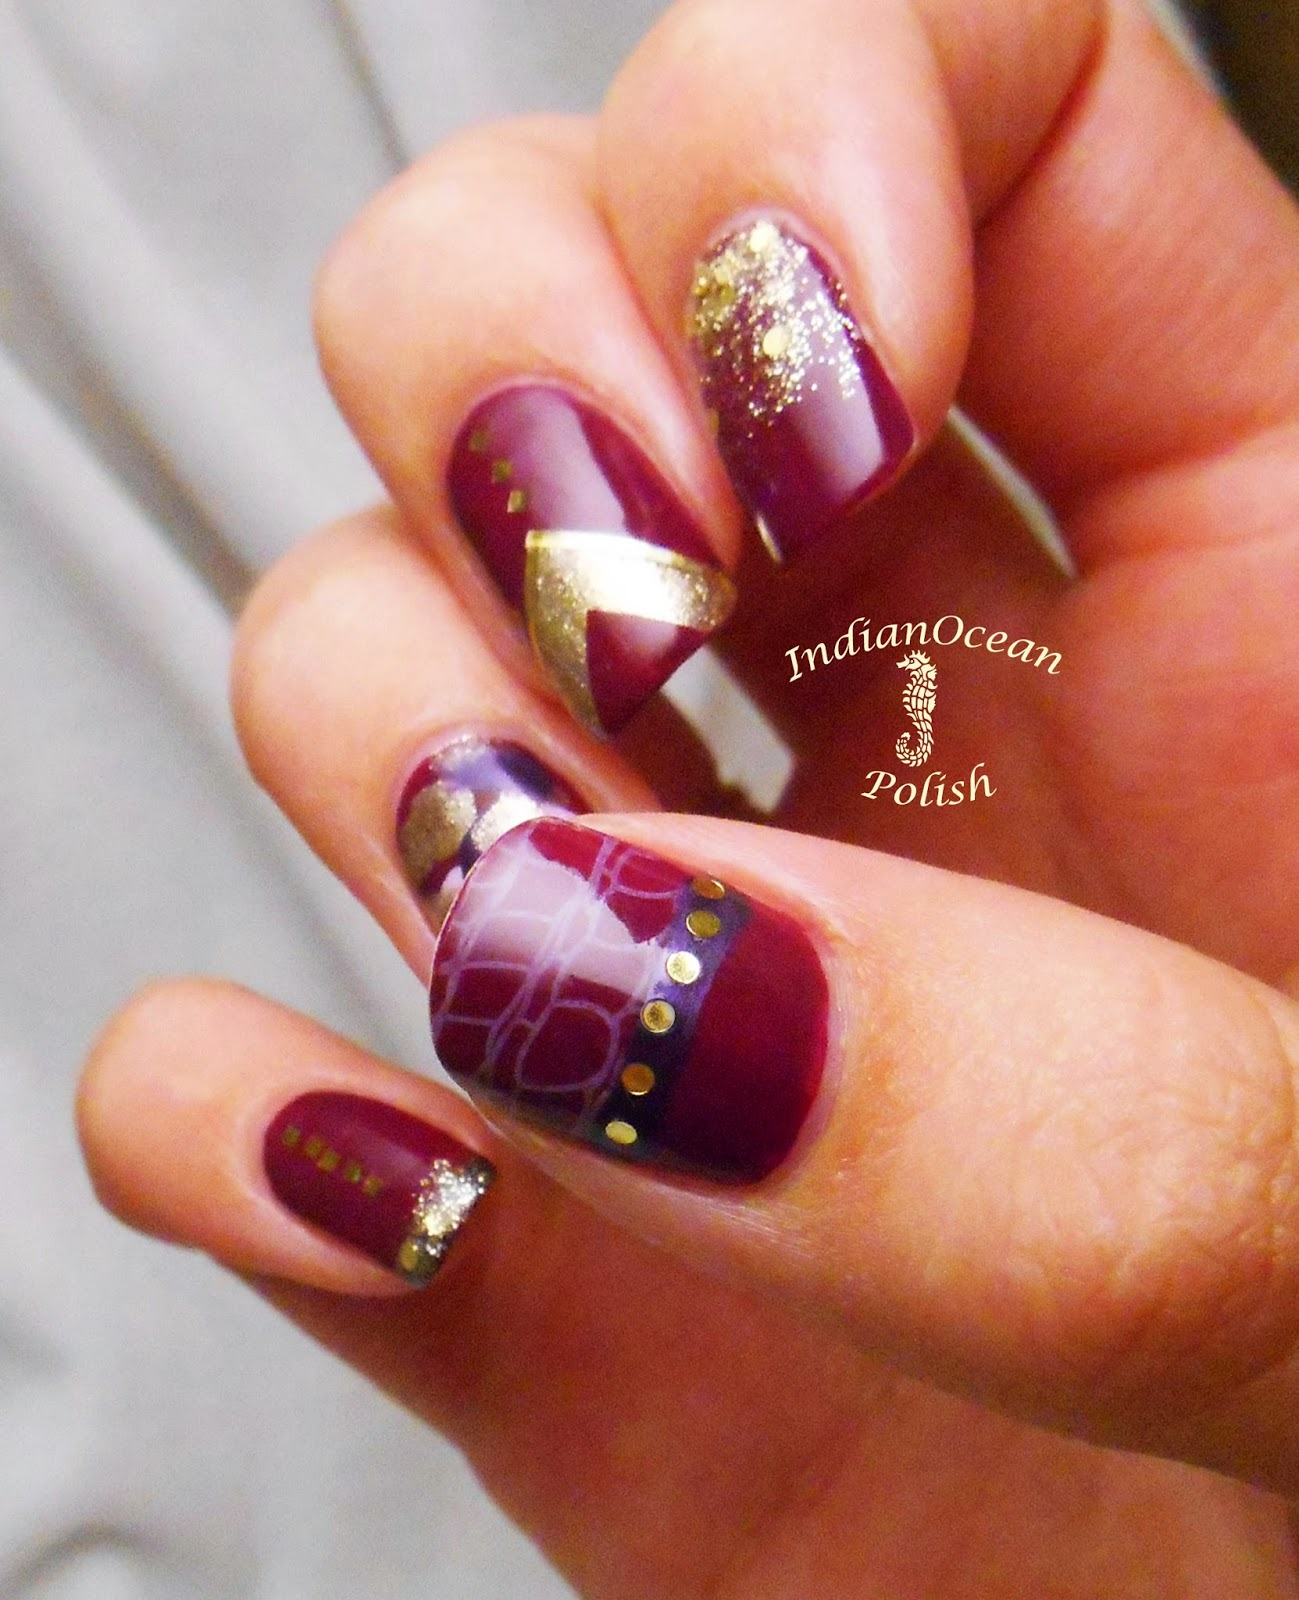 indian ocean polish purple and gold skittles nail art